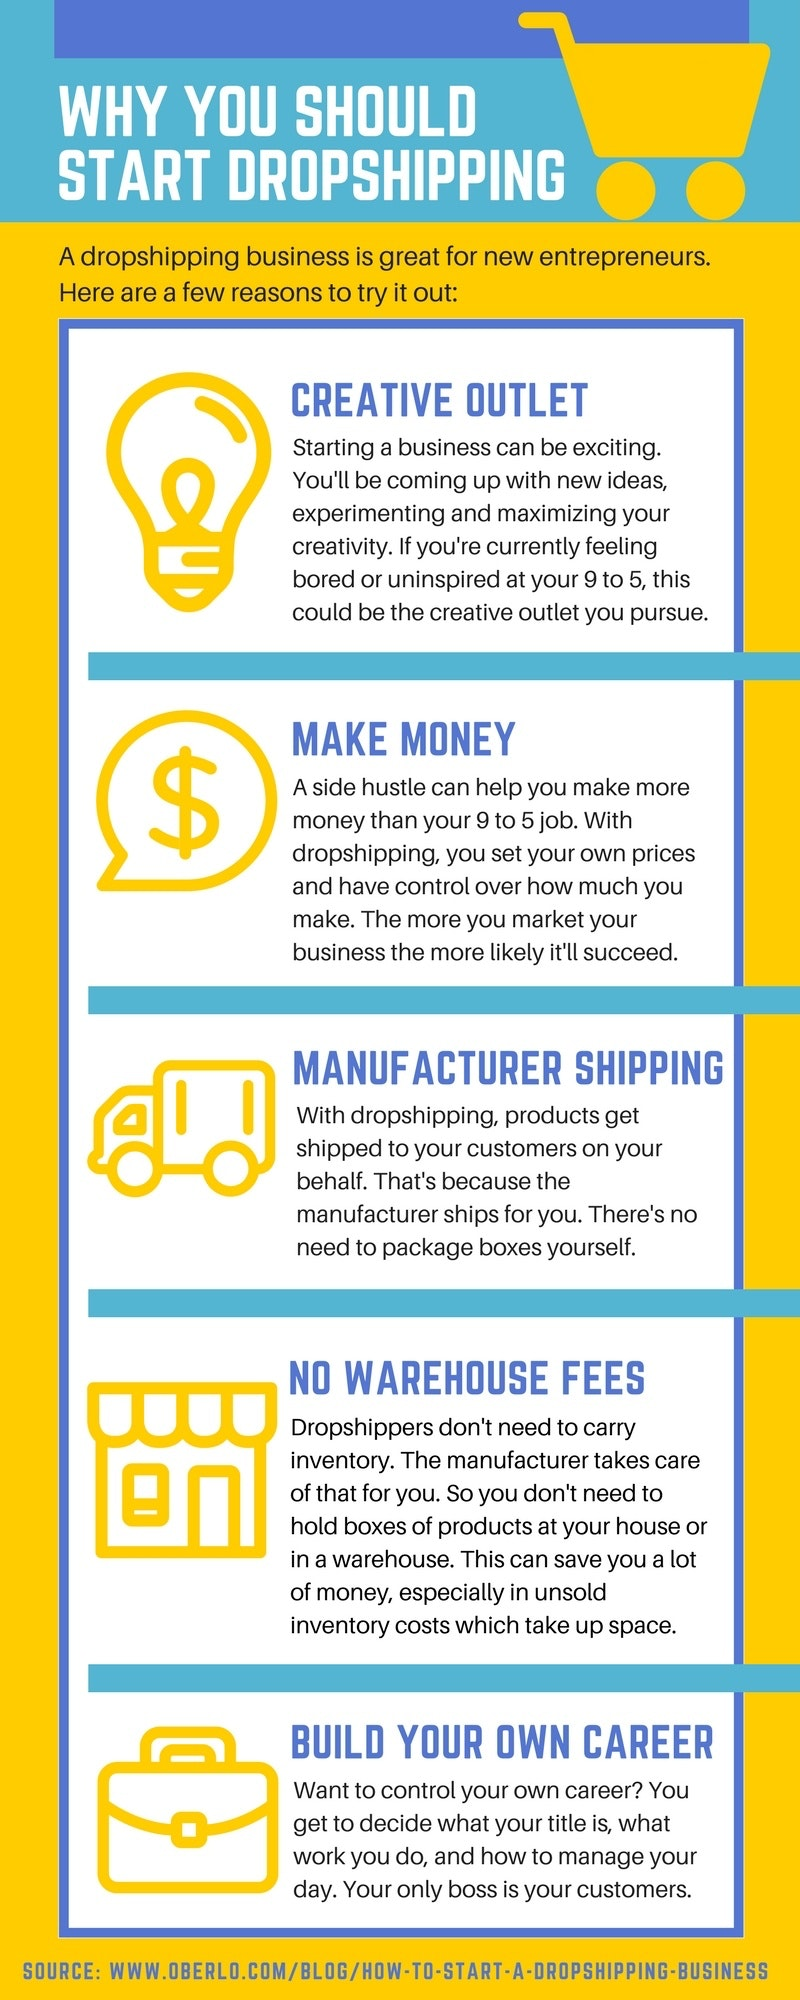 5 reasons to start dropshipping